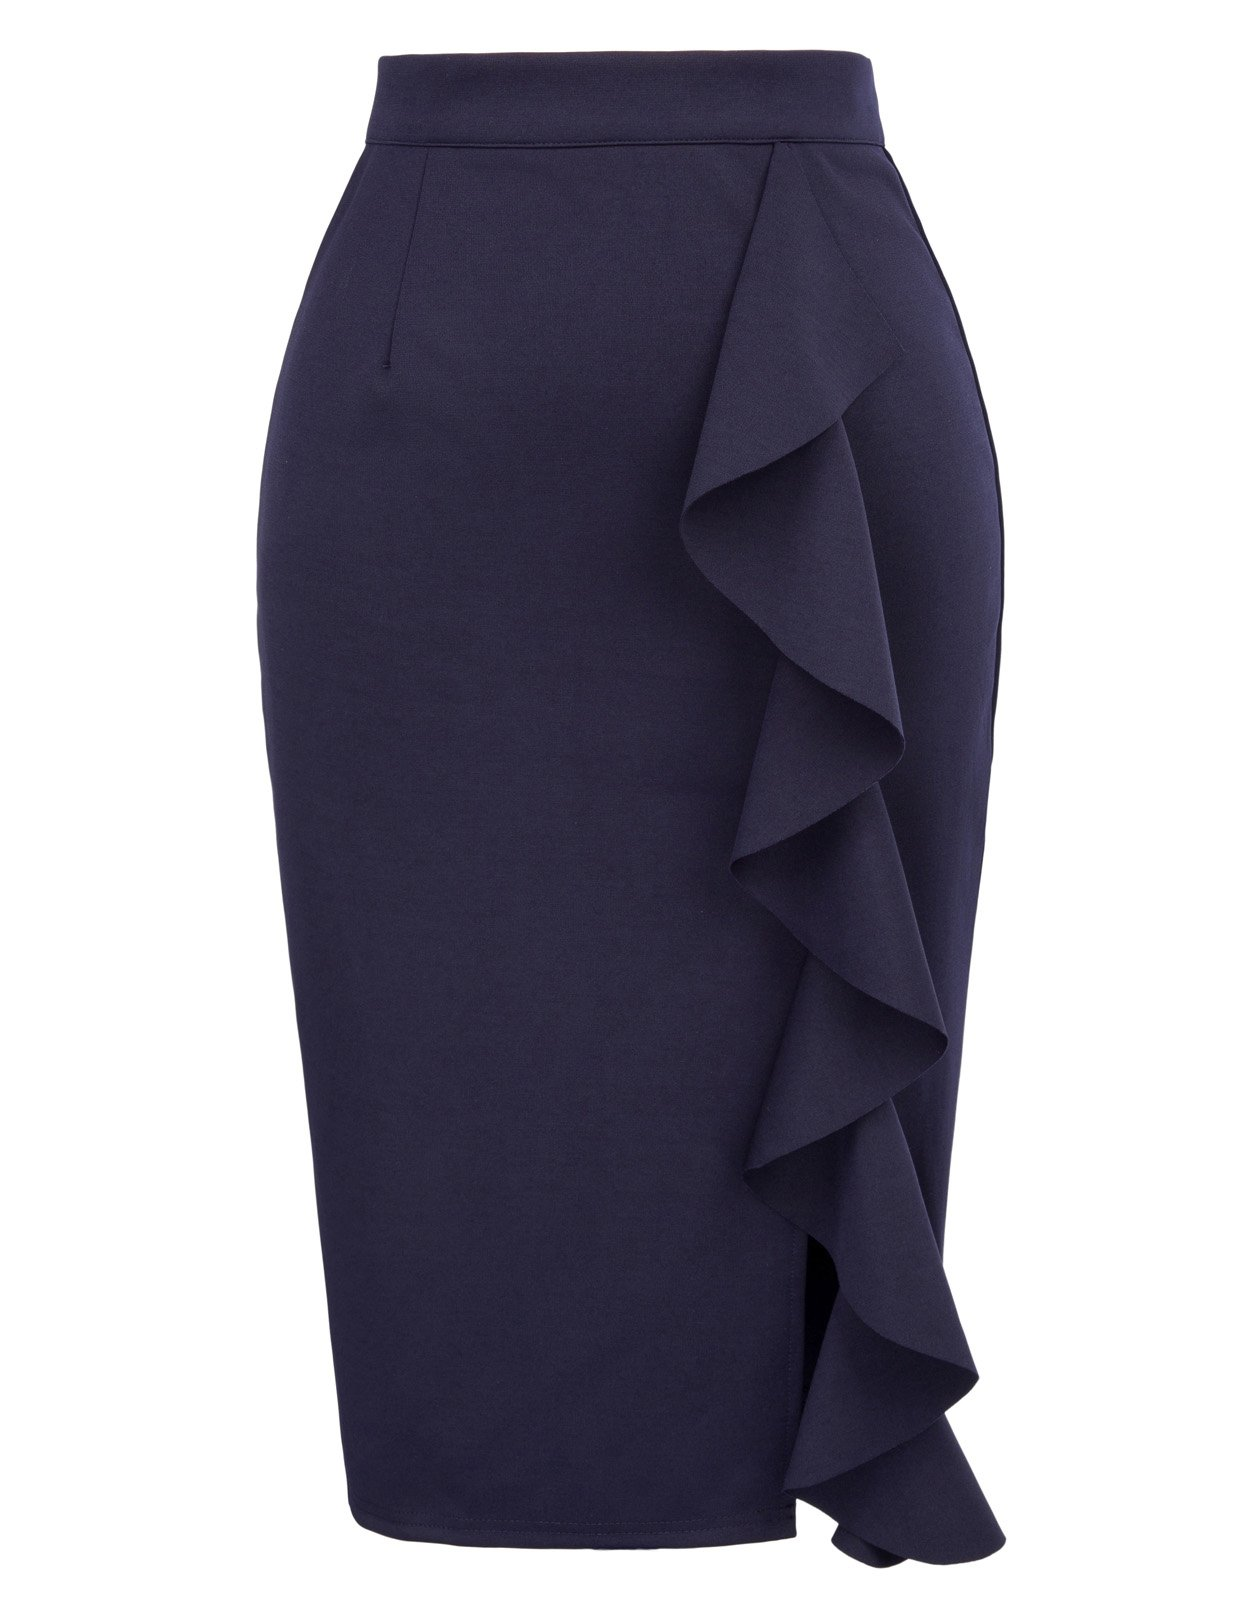 GRACE KARIN Women's Solid Wear to Work Bodycon Midi Skirts Size M Navy Blue by GRACE KARIN